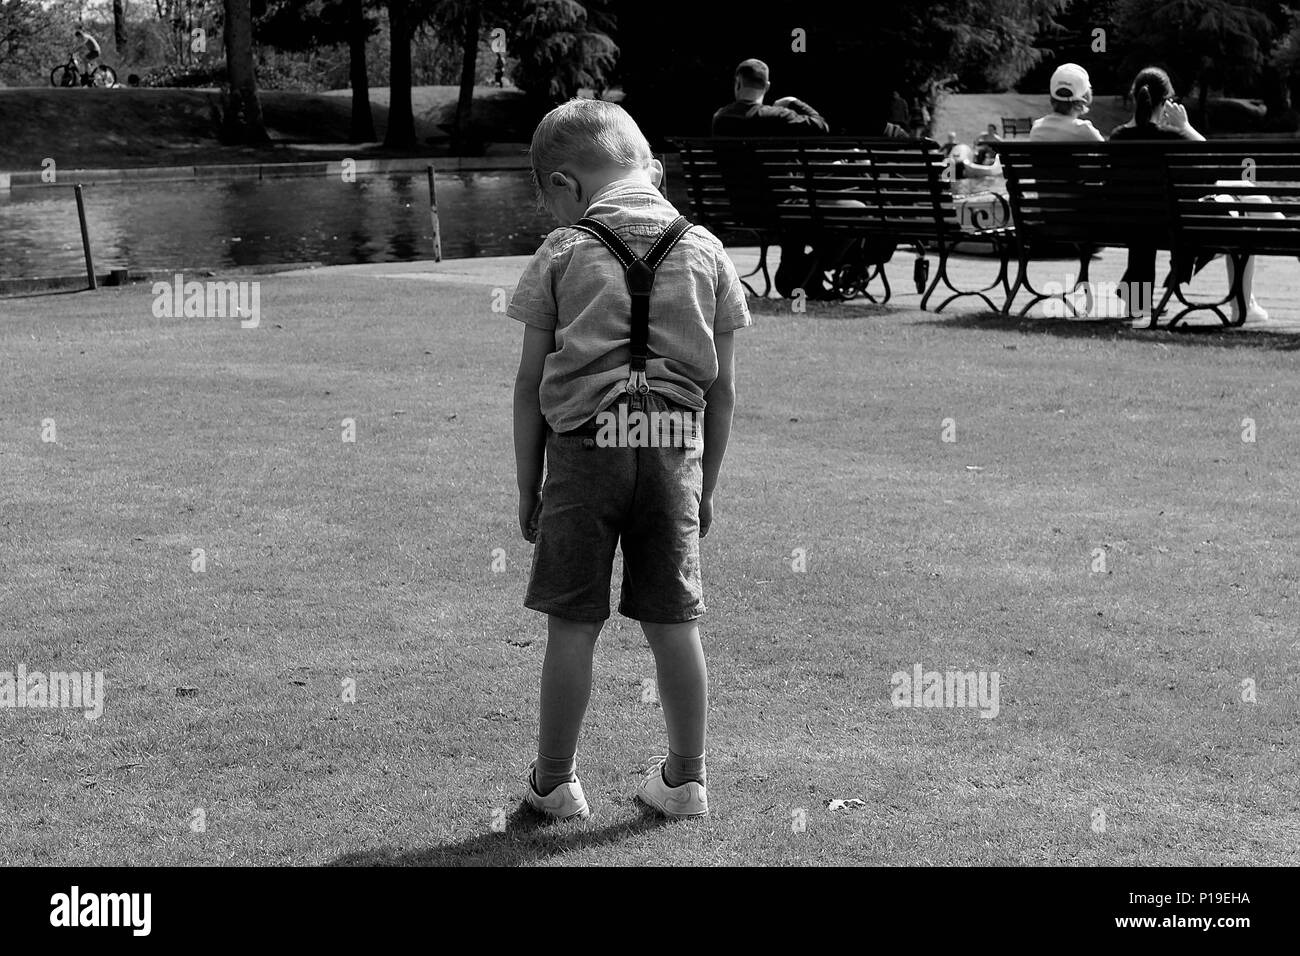 sad young boy standing alone in shorts black and white photo - Stock Image